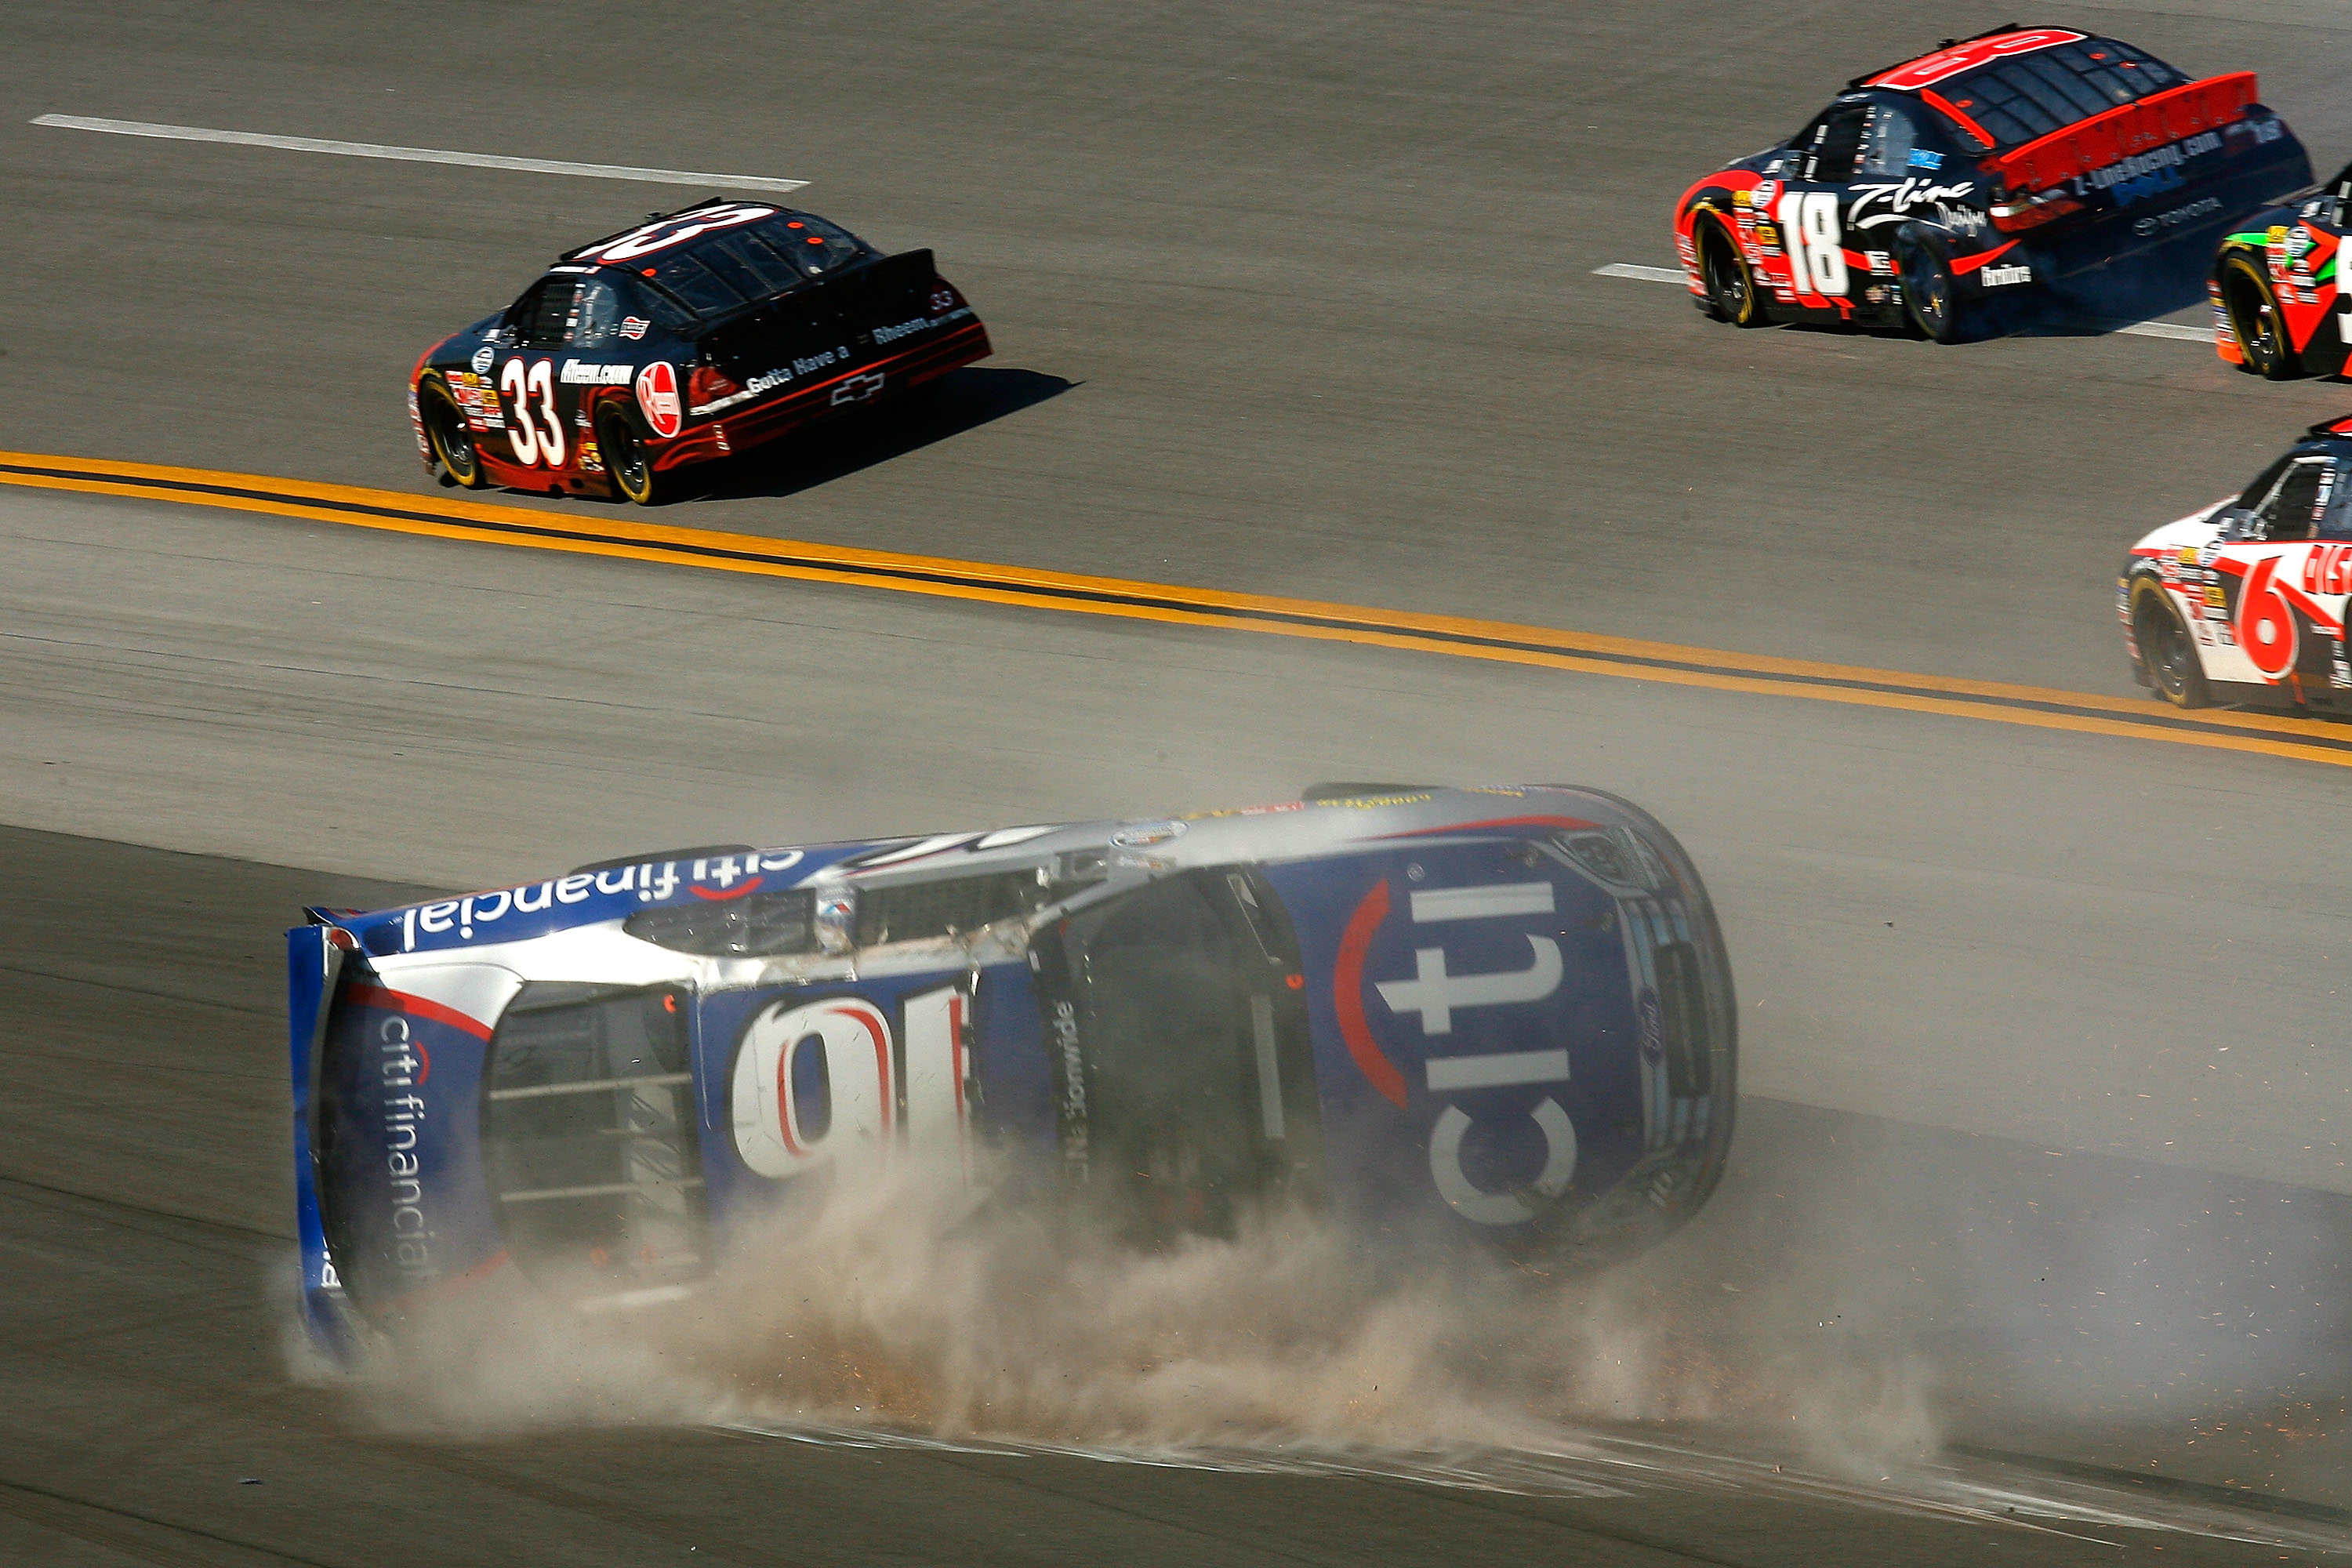 TALLADEGA, AL - APRIL 25:  Matt Kenseth, driver of the #16 CitiFinancial Ford, crashes during the NASCAR Nationwide Series Aaron's 312 at Talladega Superspeedway on April 25, 2009 in Talladega, Alabama.  (Photo by Jason Smith/Getty Images for NASCAR)